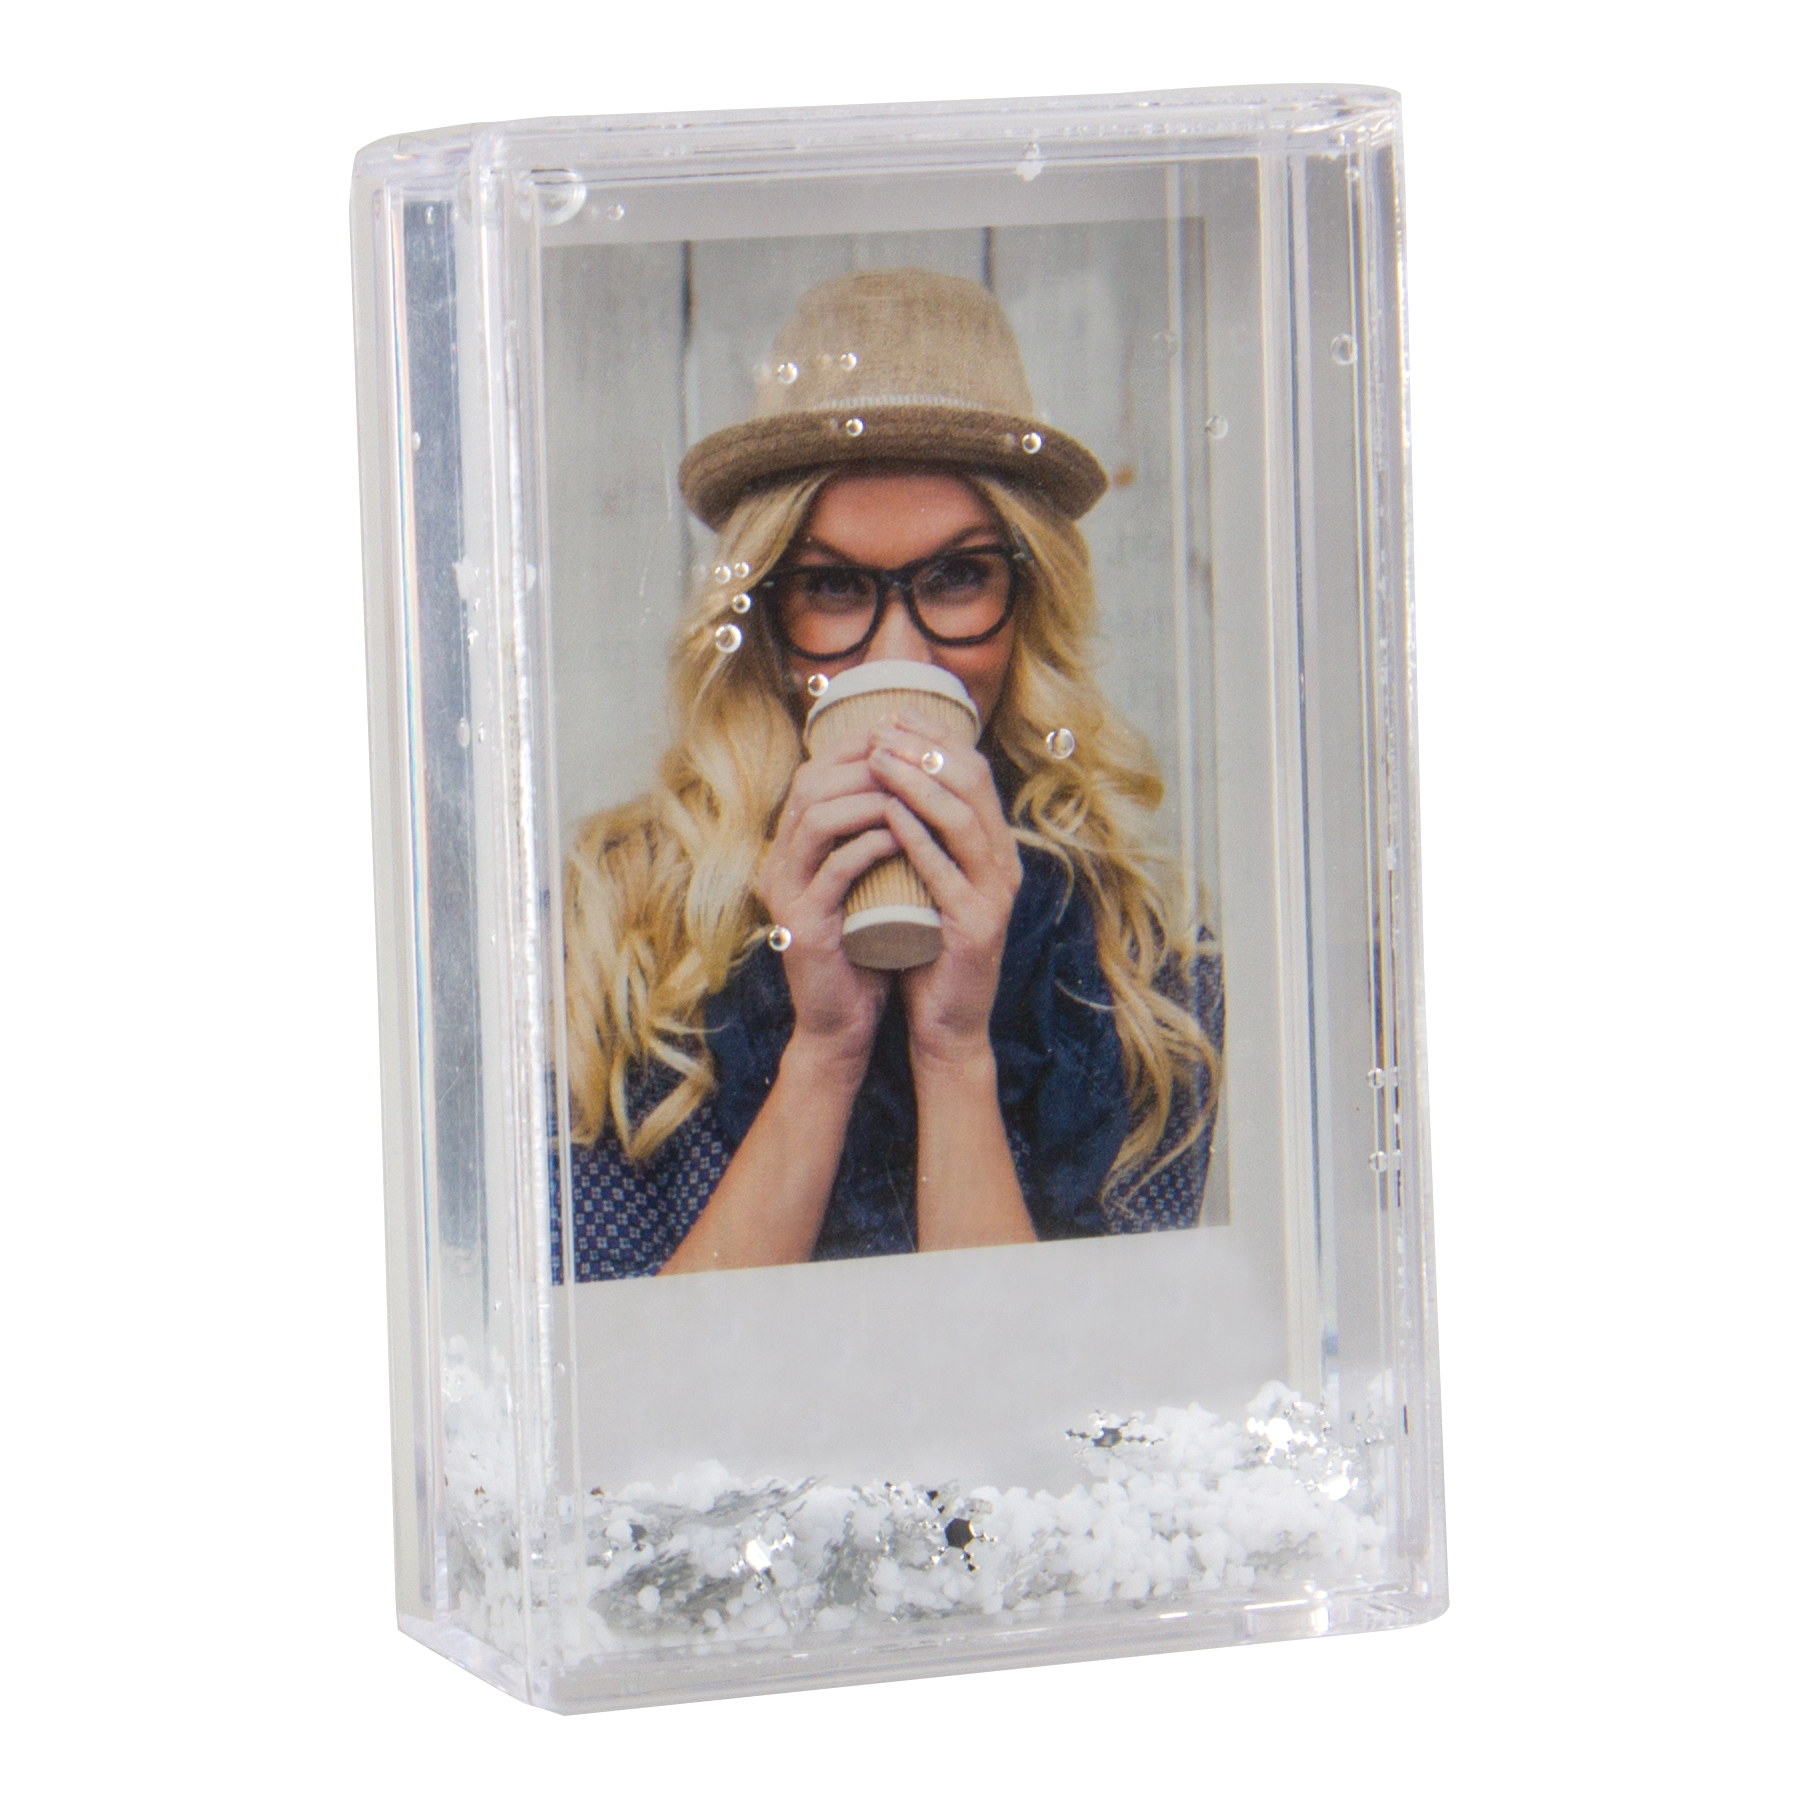 wholesale instax picture frames with snow for fujifilm neil enterprises. Black Bedroom Furniture Sets. Home Design Ideas